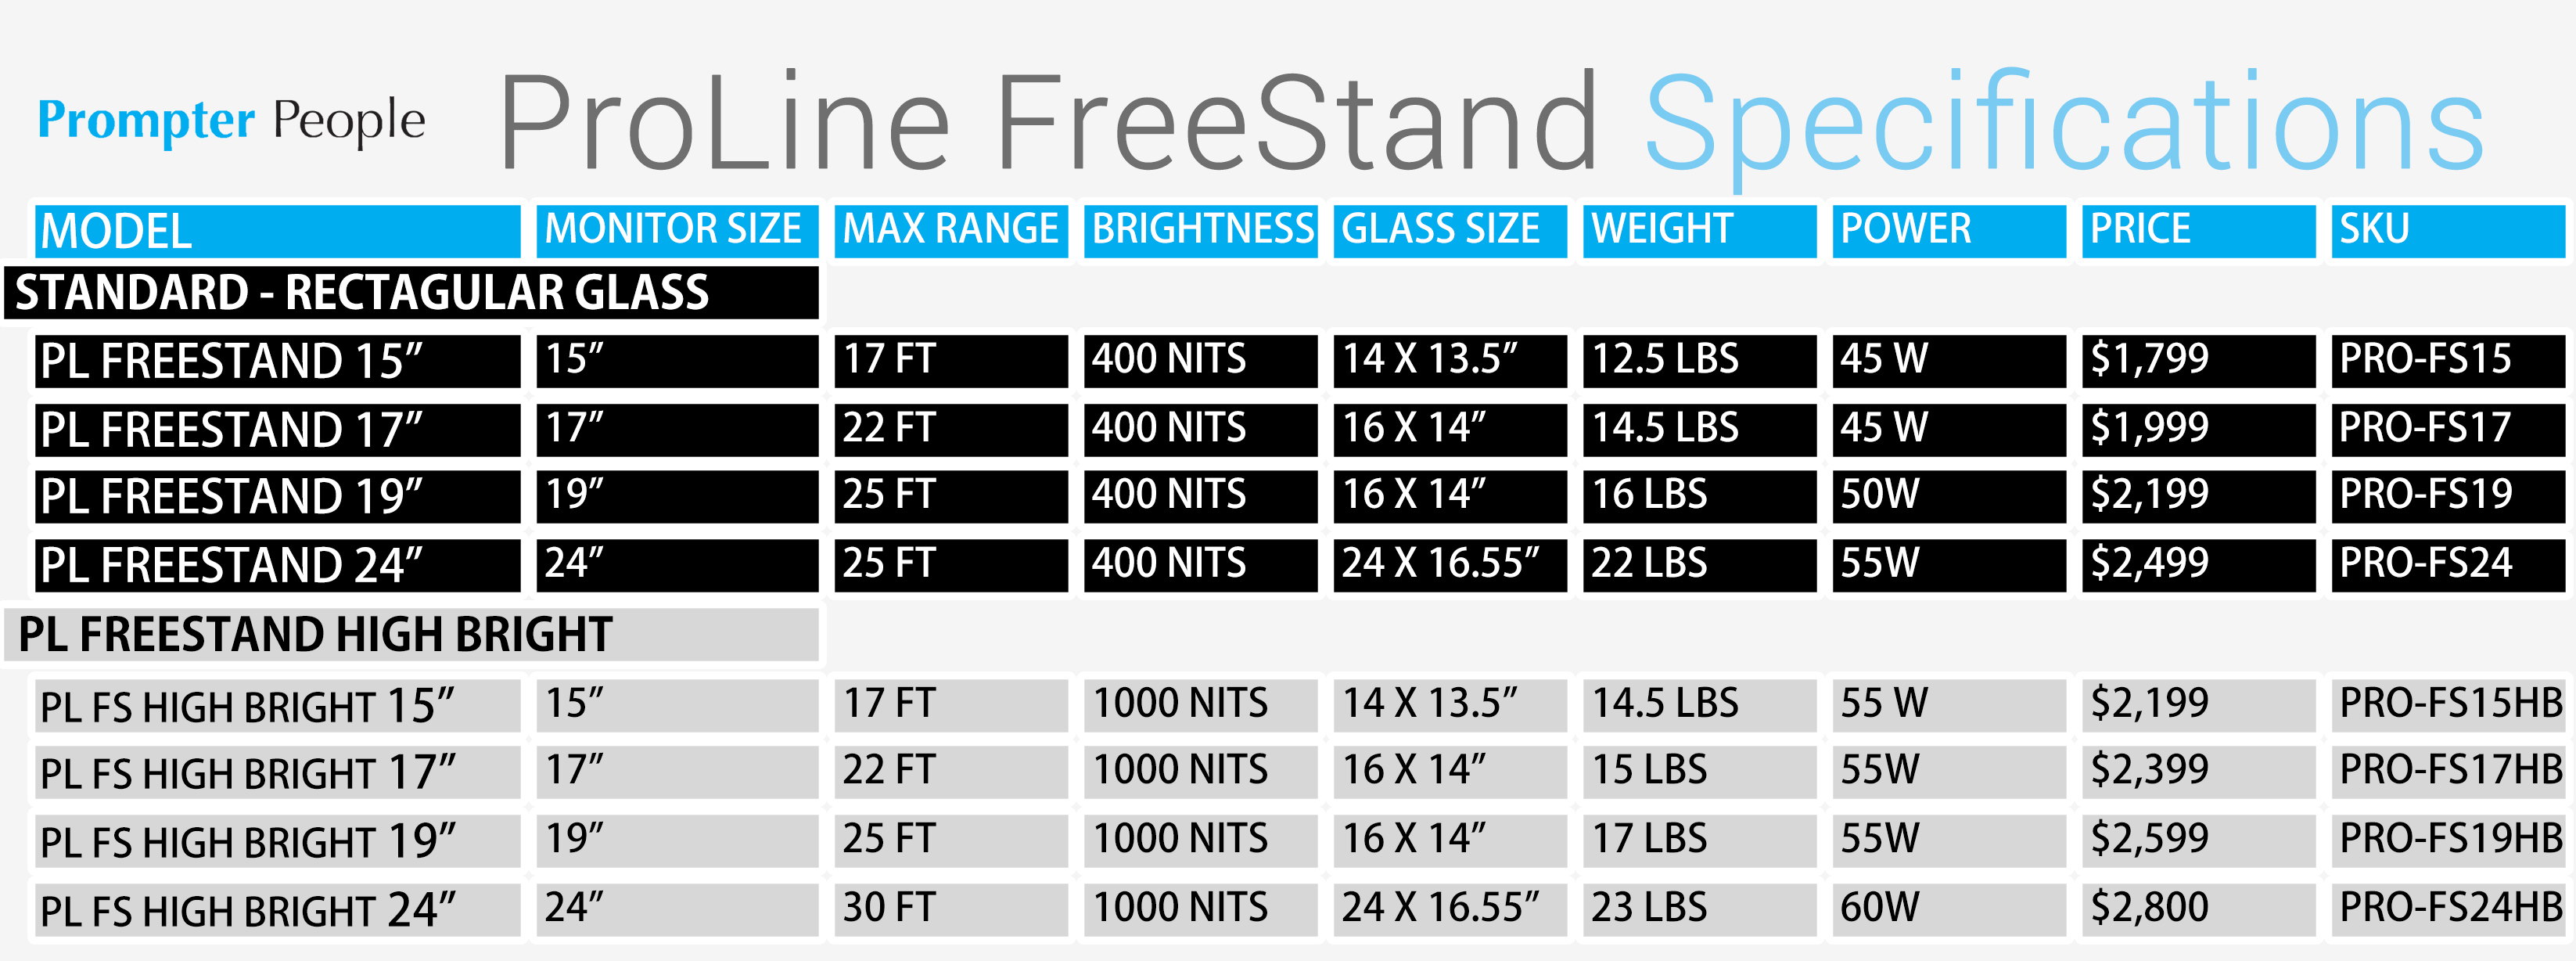 proline-freestand-specifications-grey.jpg